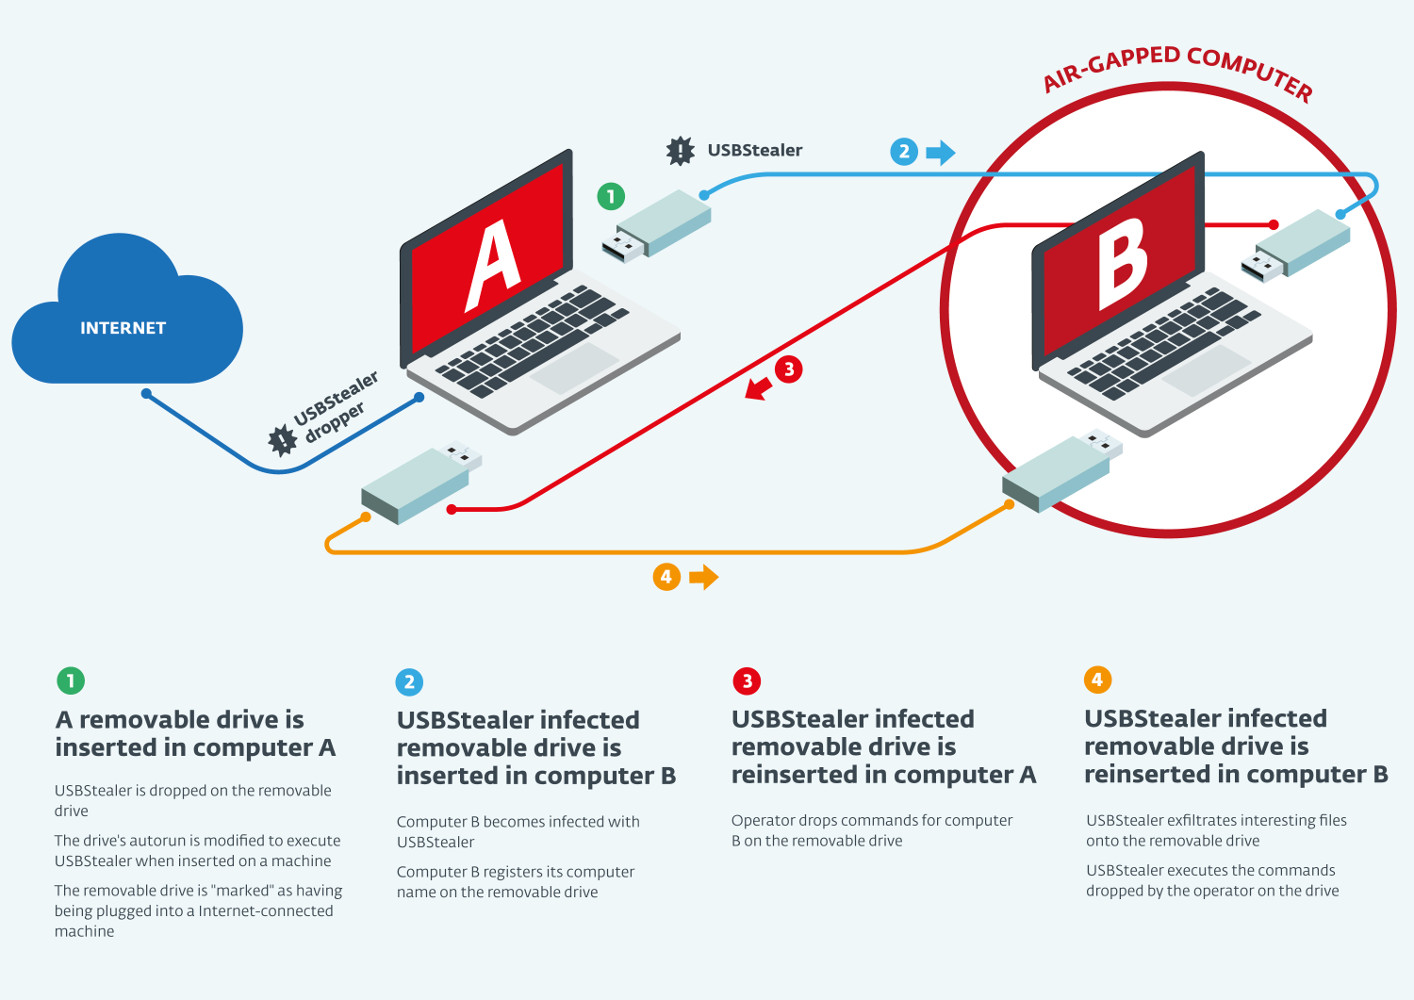 MailShark Pawn Storm using spear and website phishing Sednit infographic